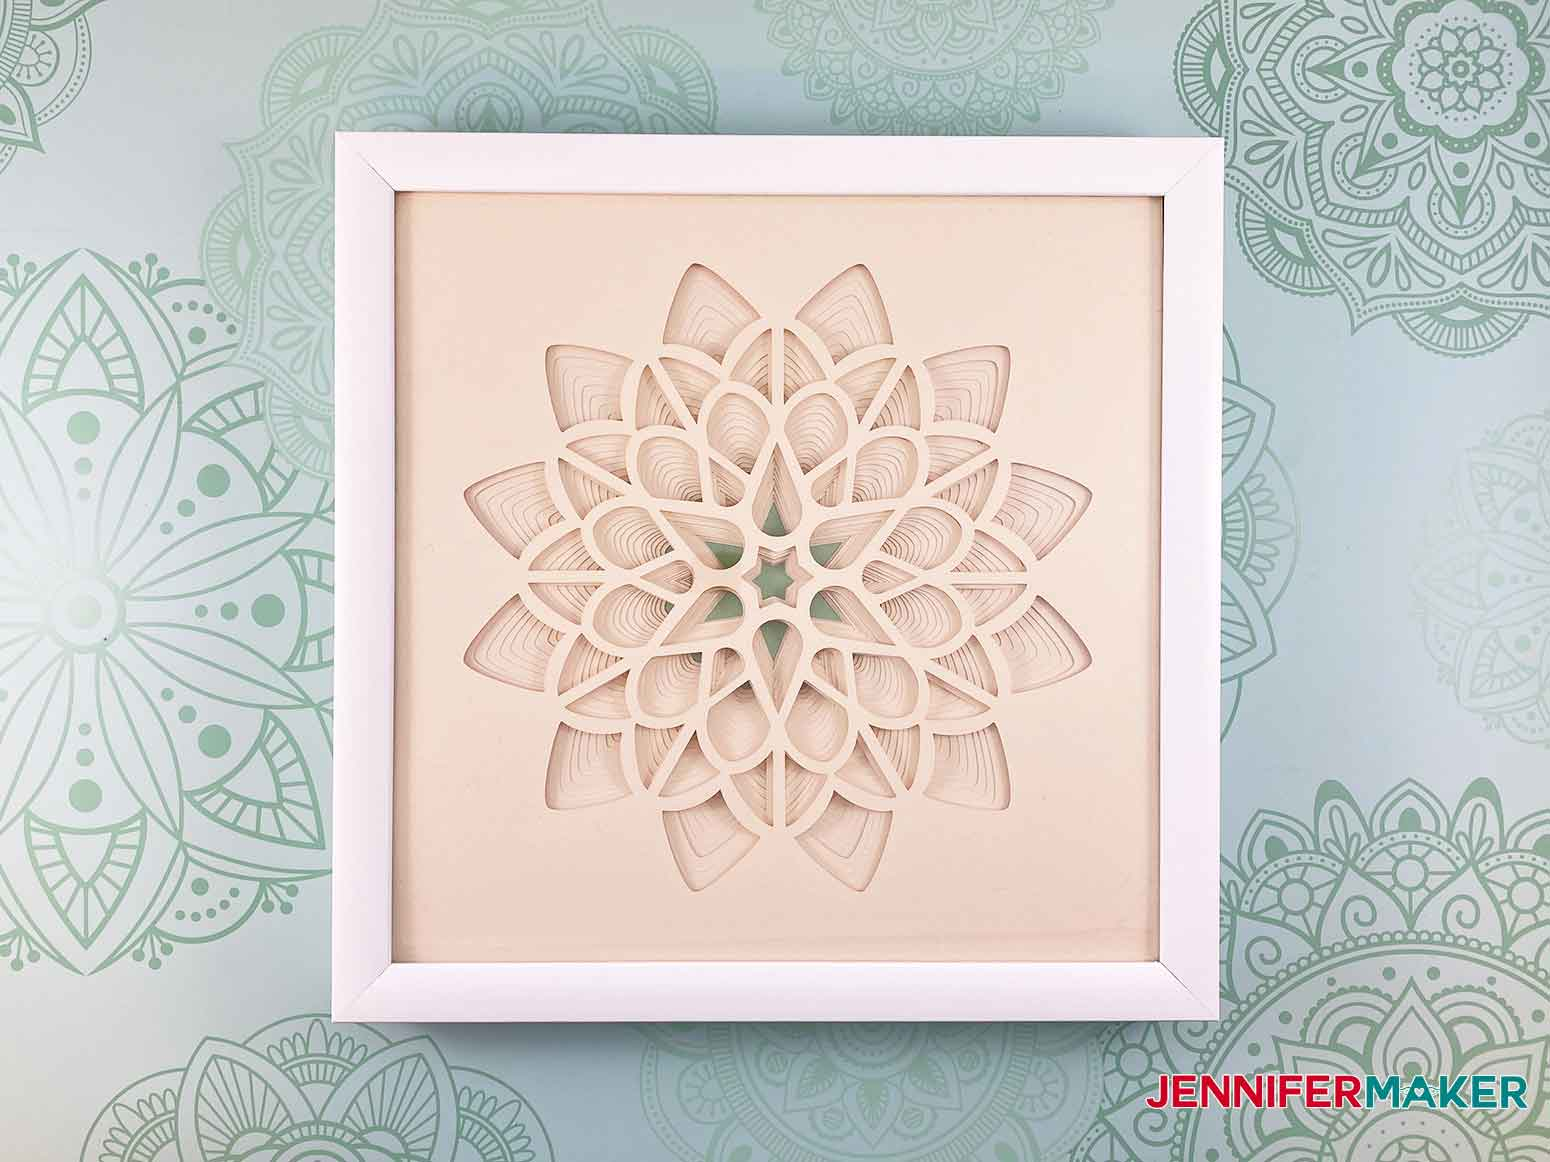 This is what my assembled 3D paper cut art flower looks like